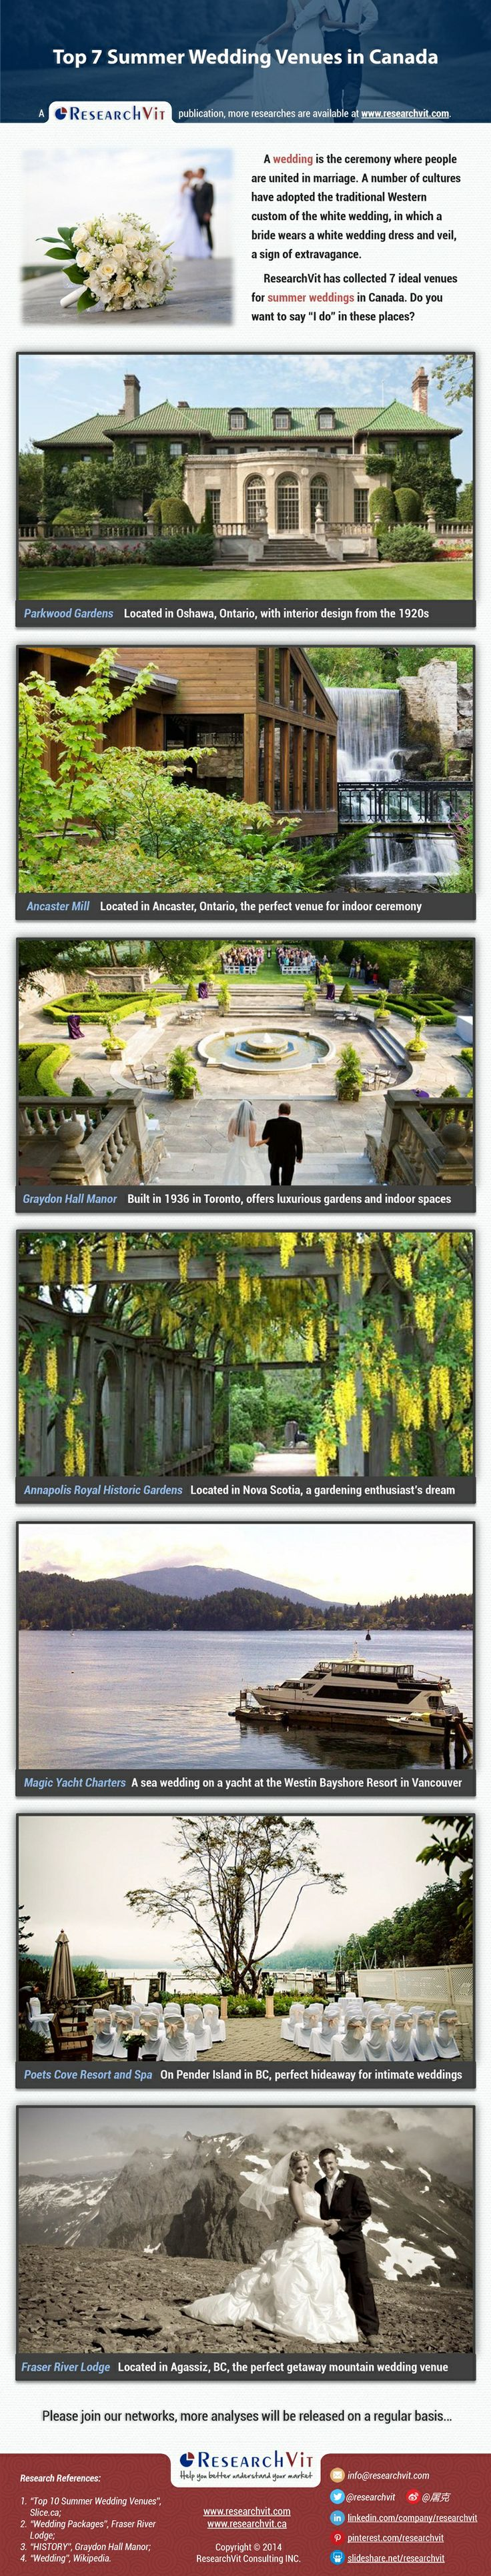 """Top 7 Summer Wedding Venues in Canada: Aweddingis theceremonywhere people are united inmarriage. A number of cultures have adopted the traditional Western custom of thewhite wedding, in which a bride wears a whitewedding dressandveil, a sign of extravagance. ResearchVit has collected 7 ideal venues for summer weddings in Canada. Do you want to say """"I do"""" in these places?"""